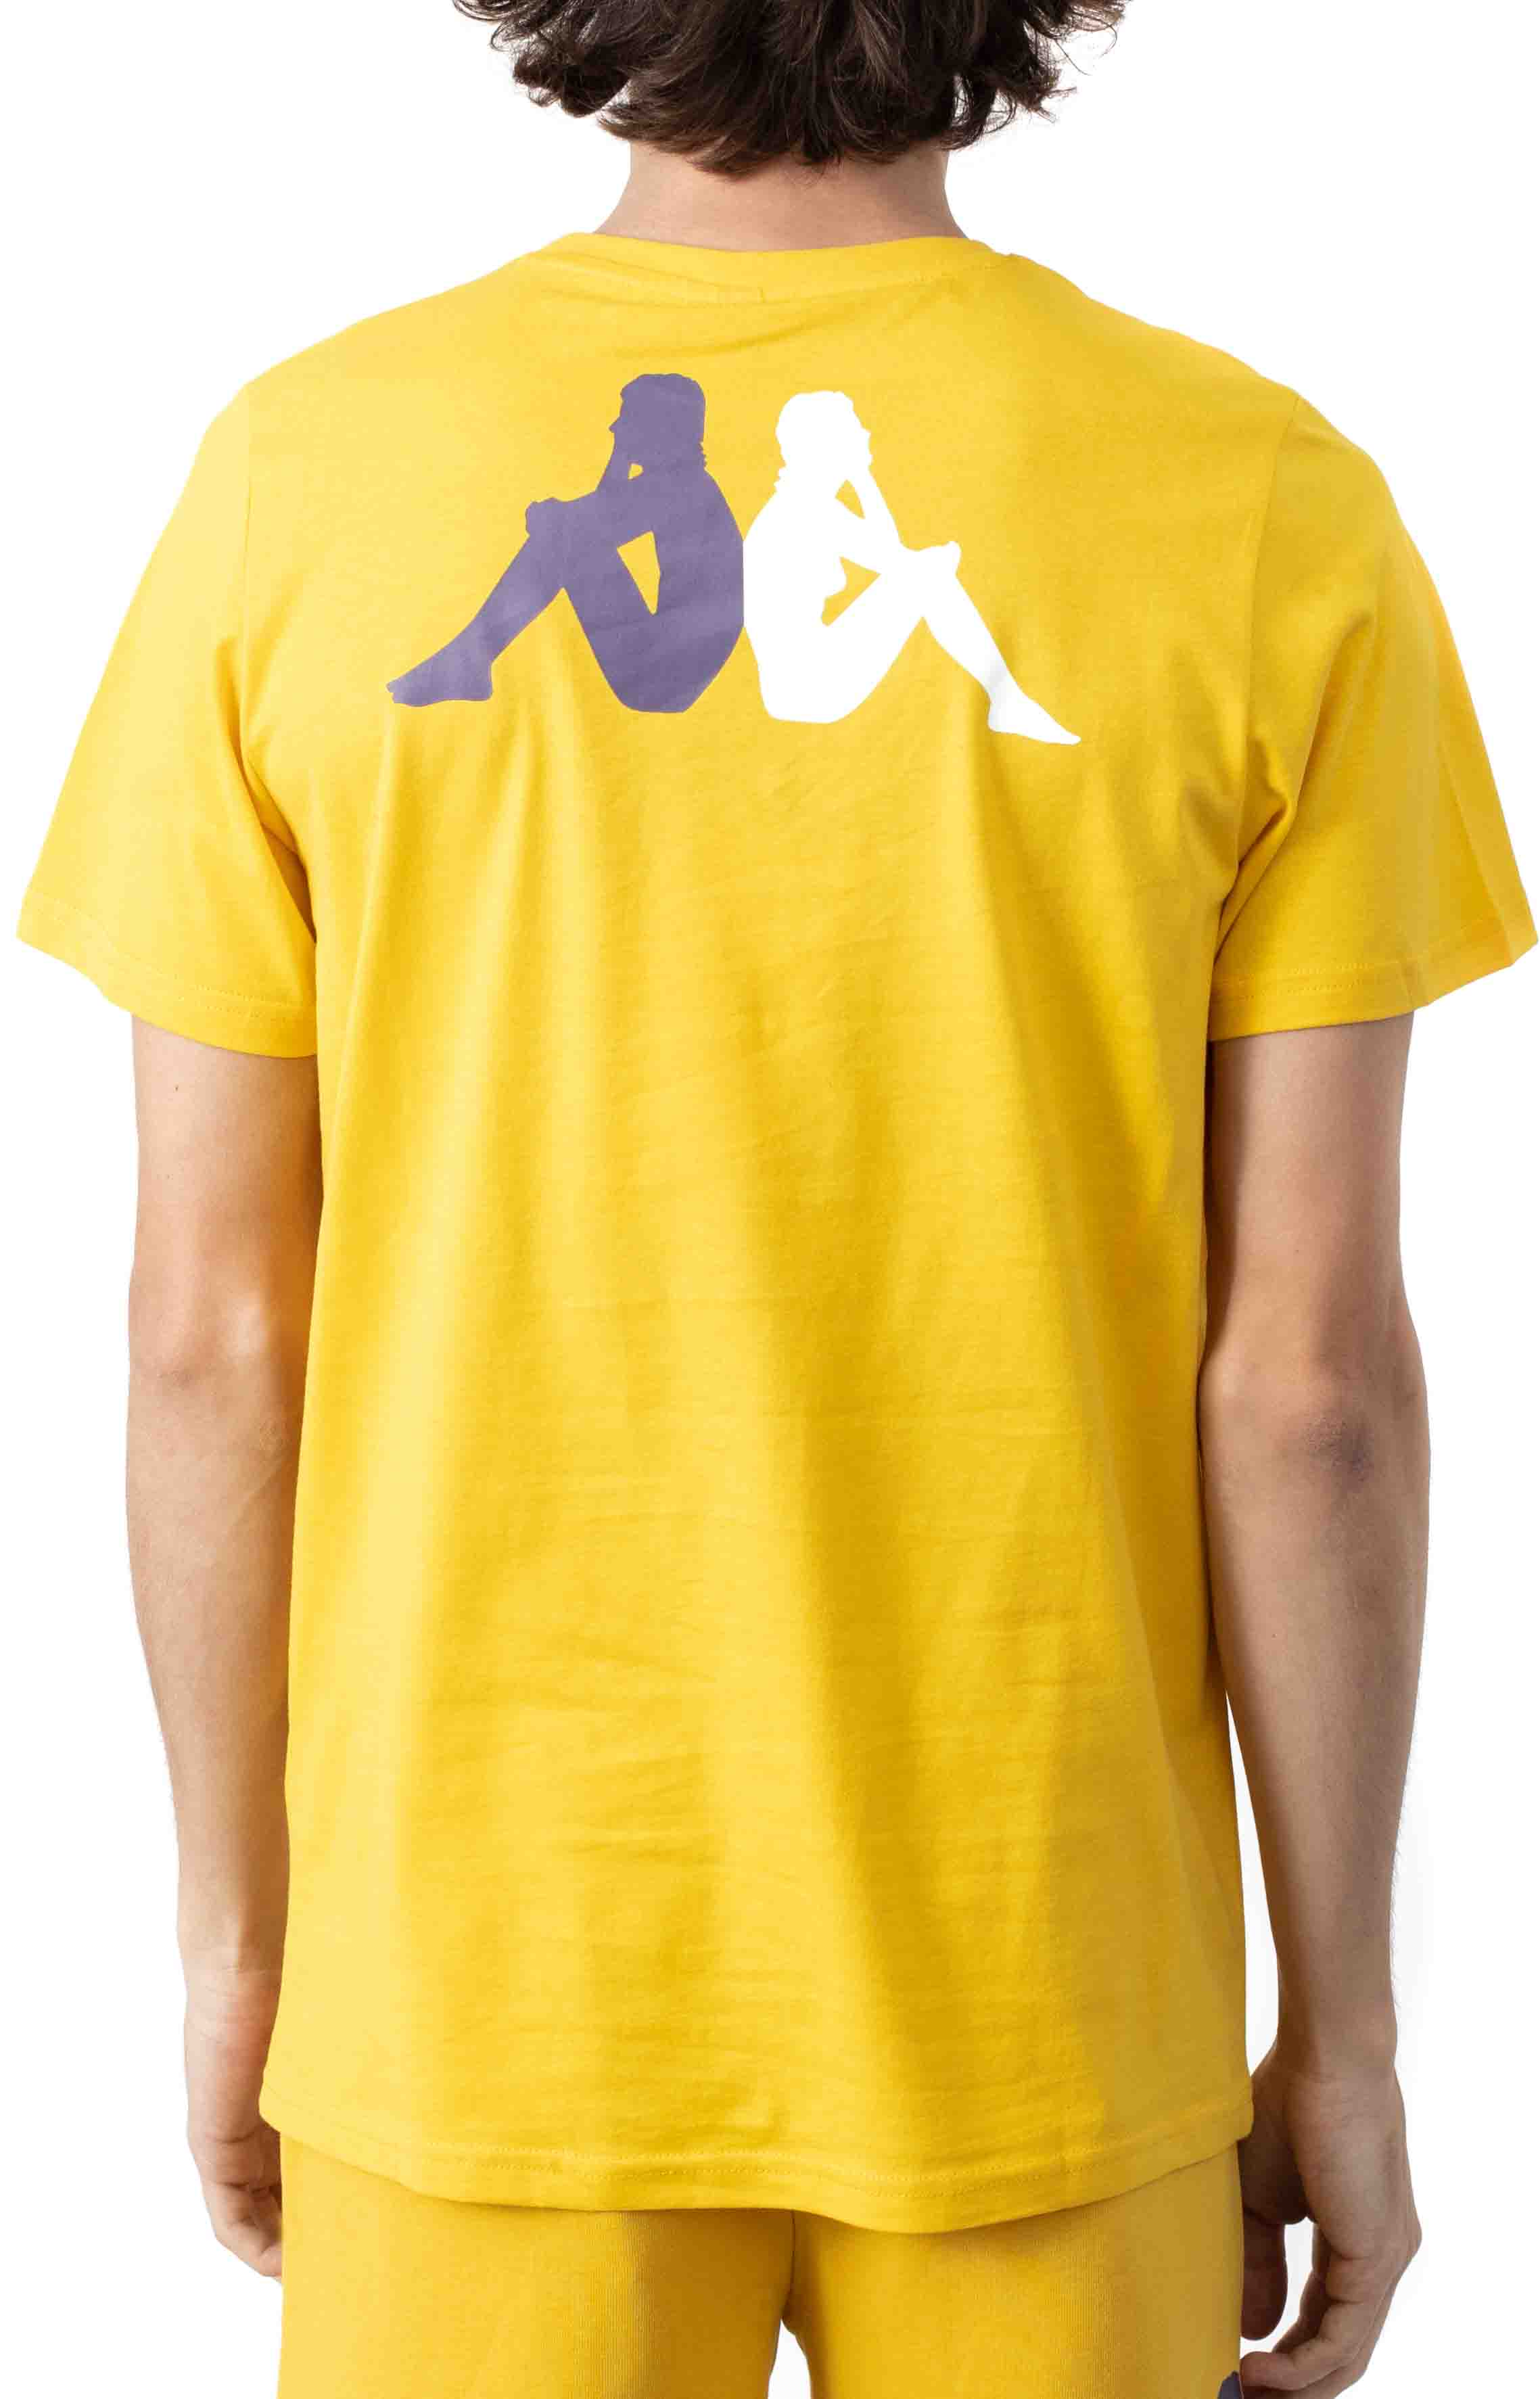 Authentic Runis T-Shirt - Yellow/Violet  3